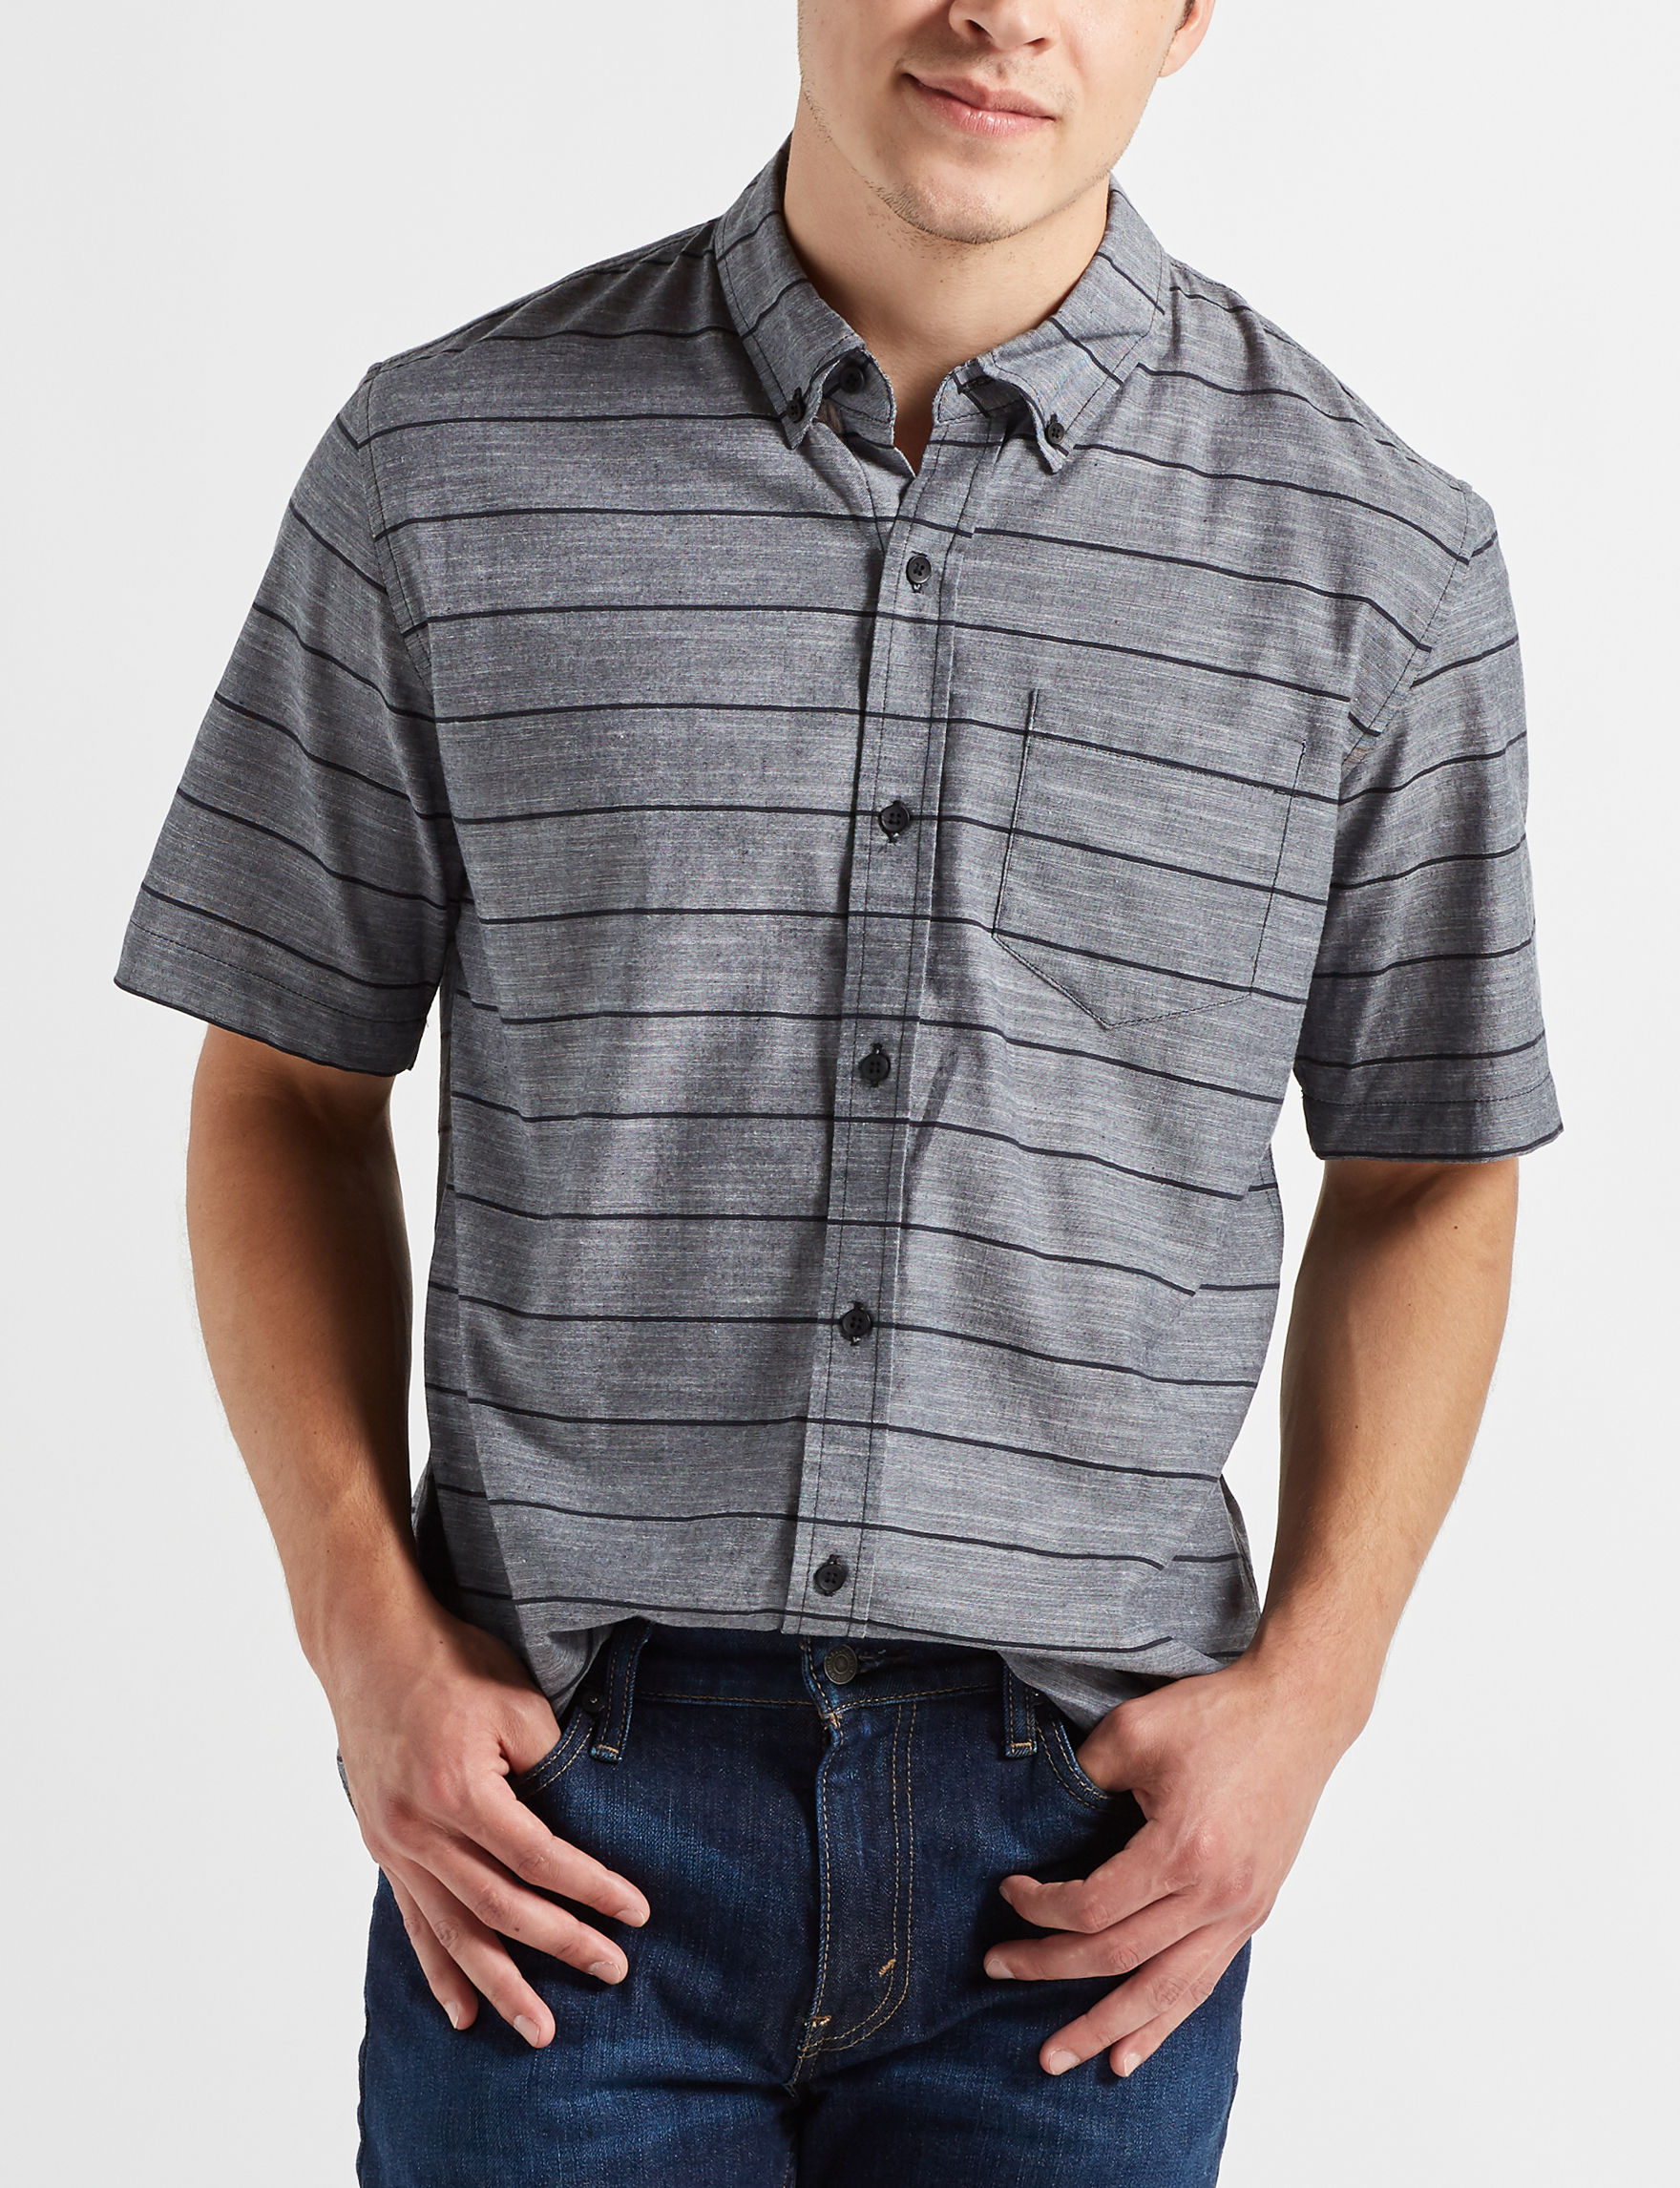 Scope Imports Grey Stripe Casual Button Down Shirts